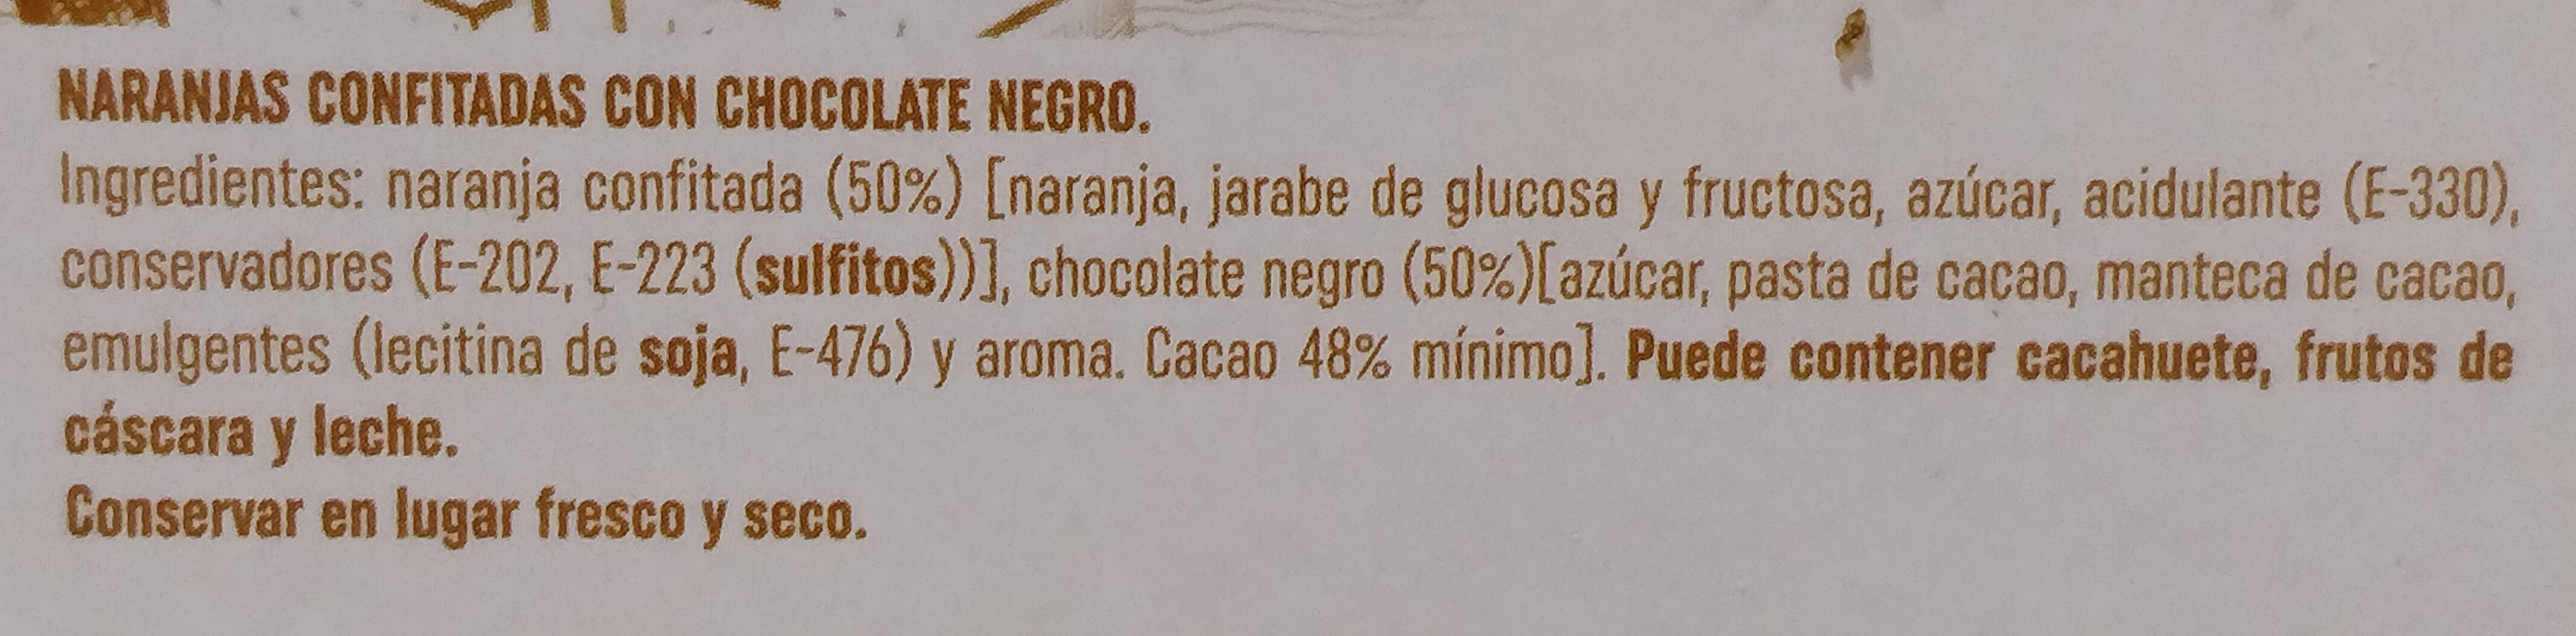 Naranja de Valencia confitada con Chocolate Negro - Ingredients